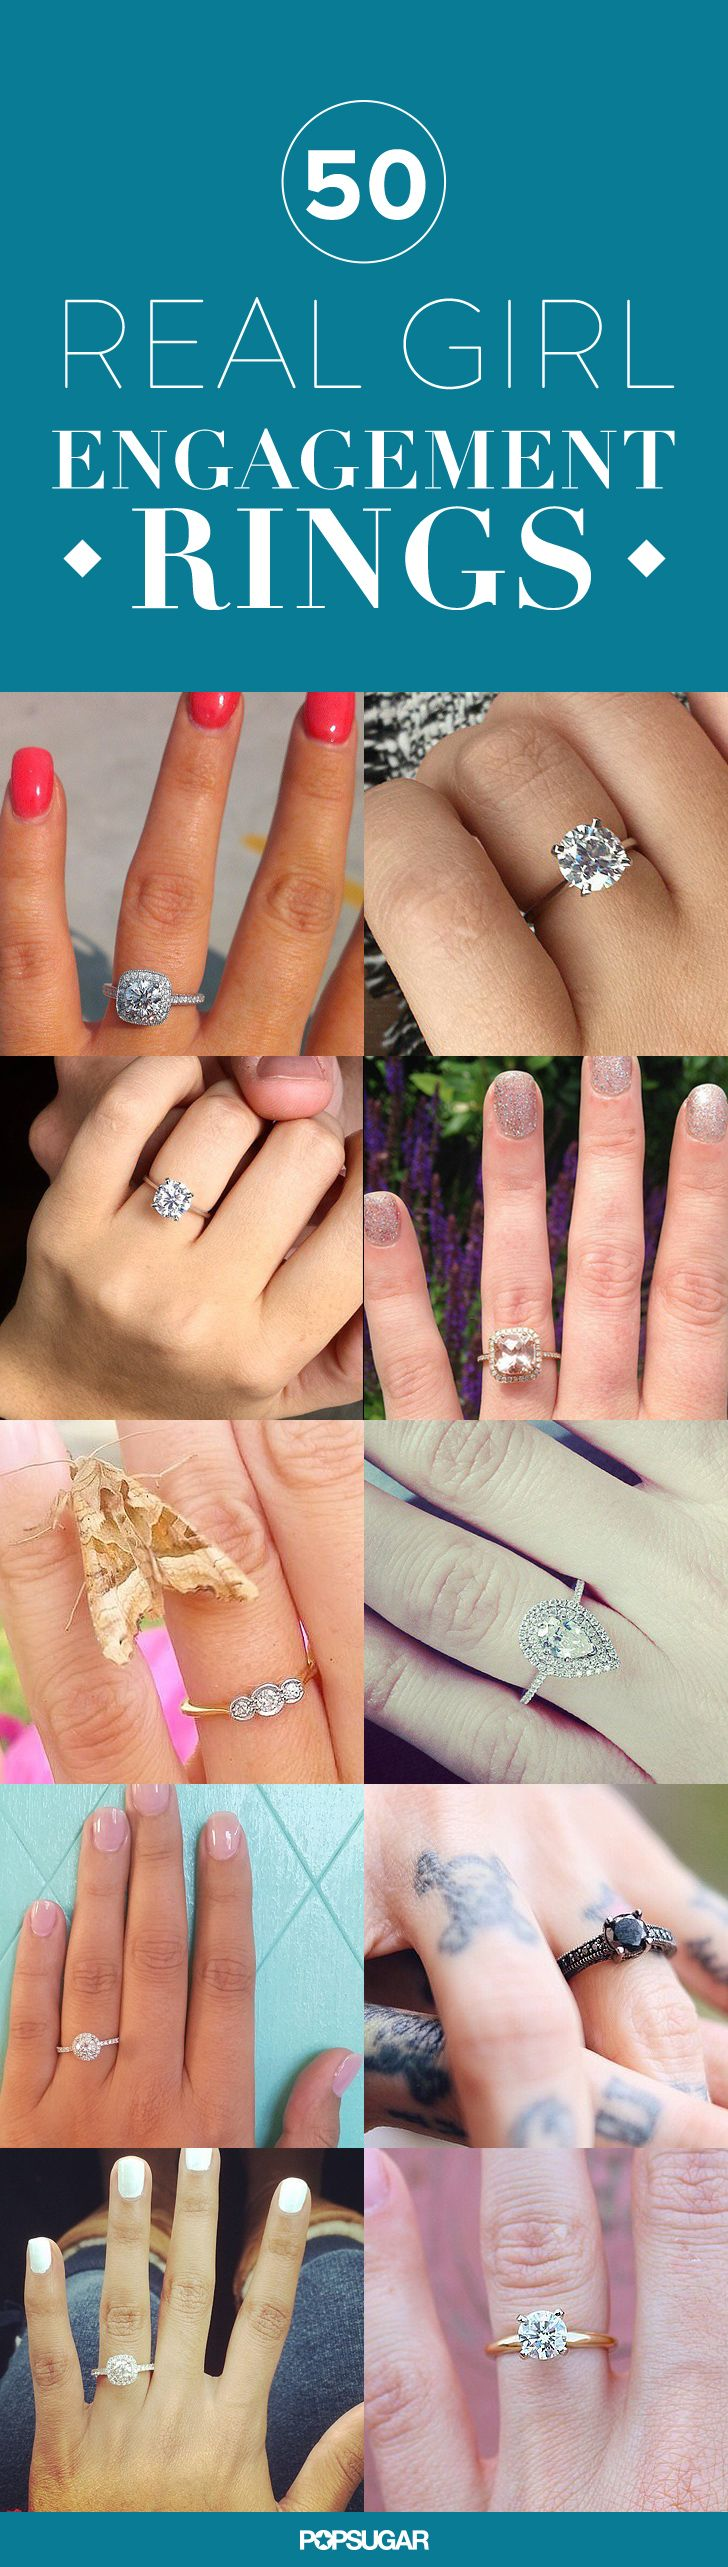 http://rubies.work/0214-ruby-rings/ If you're waiting for your significant other to pop the question — or maybe you just like daydreaming about that distant day in the future — girl, do we have some inspiration for you. We've searched Instagram for the most darling, jaw-dropping, cool-girl engagement rings from real ladies who recently had their beloved #putaringonit.